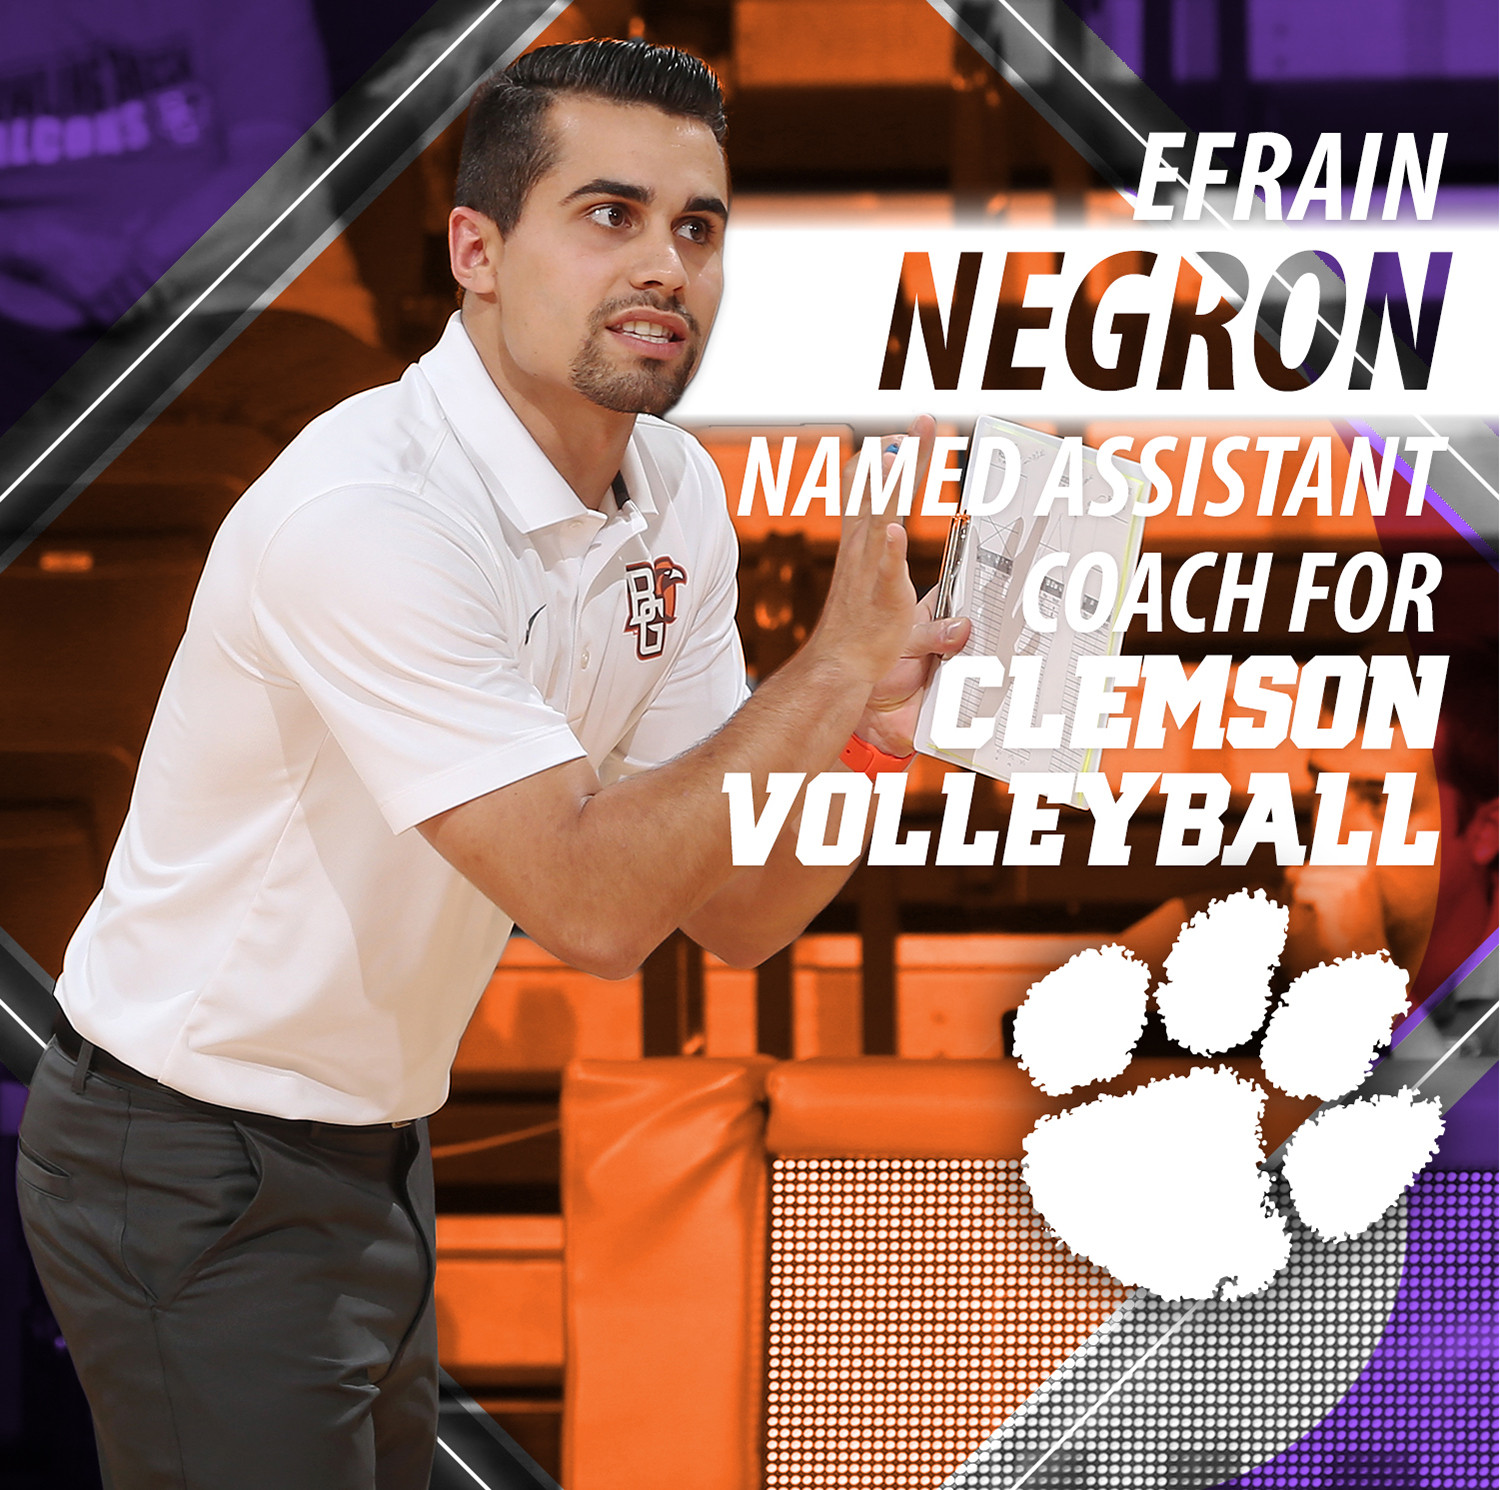 Negron Joins Clemson Volleyball Staff as Assistant Coach